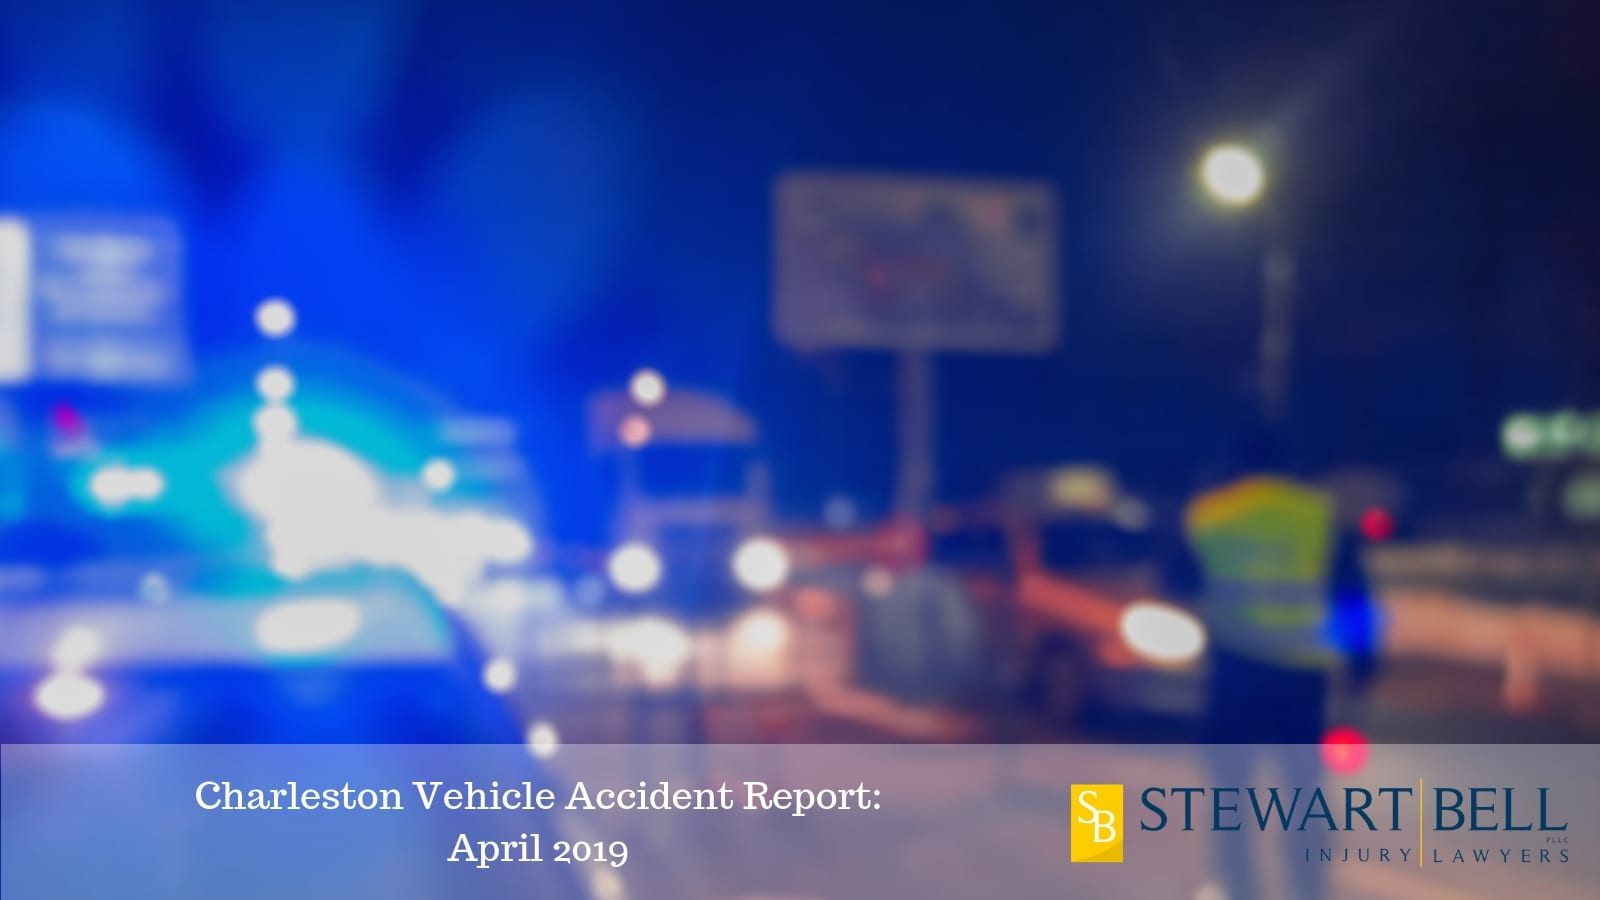 Car Accident At Night Stock Photo